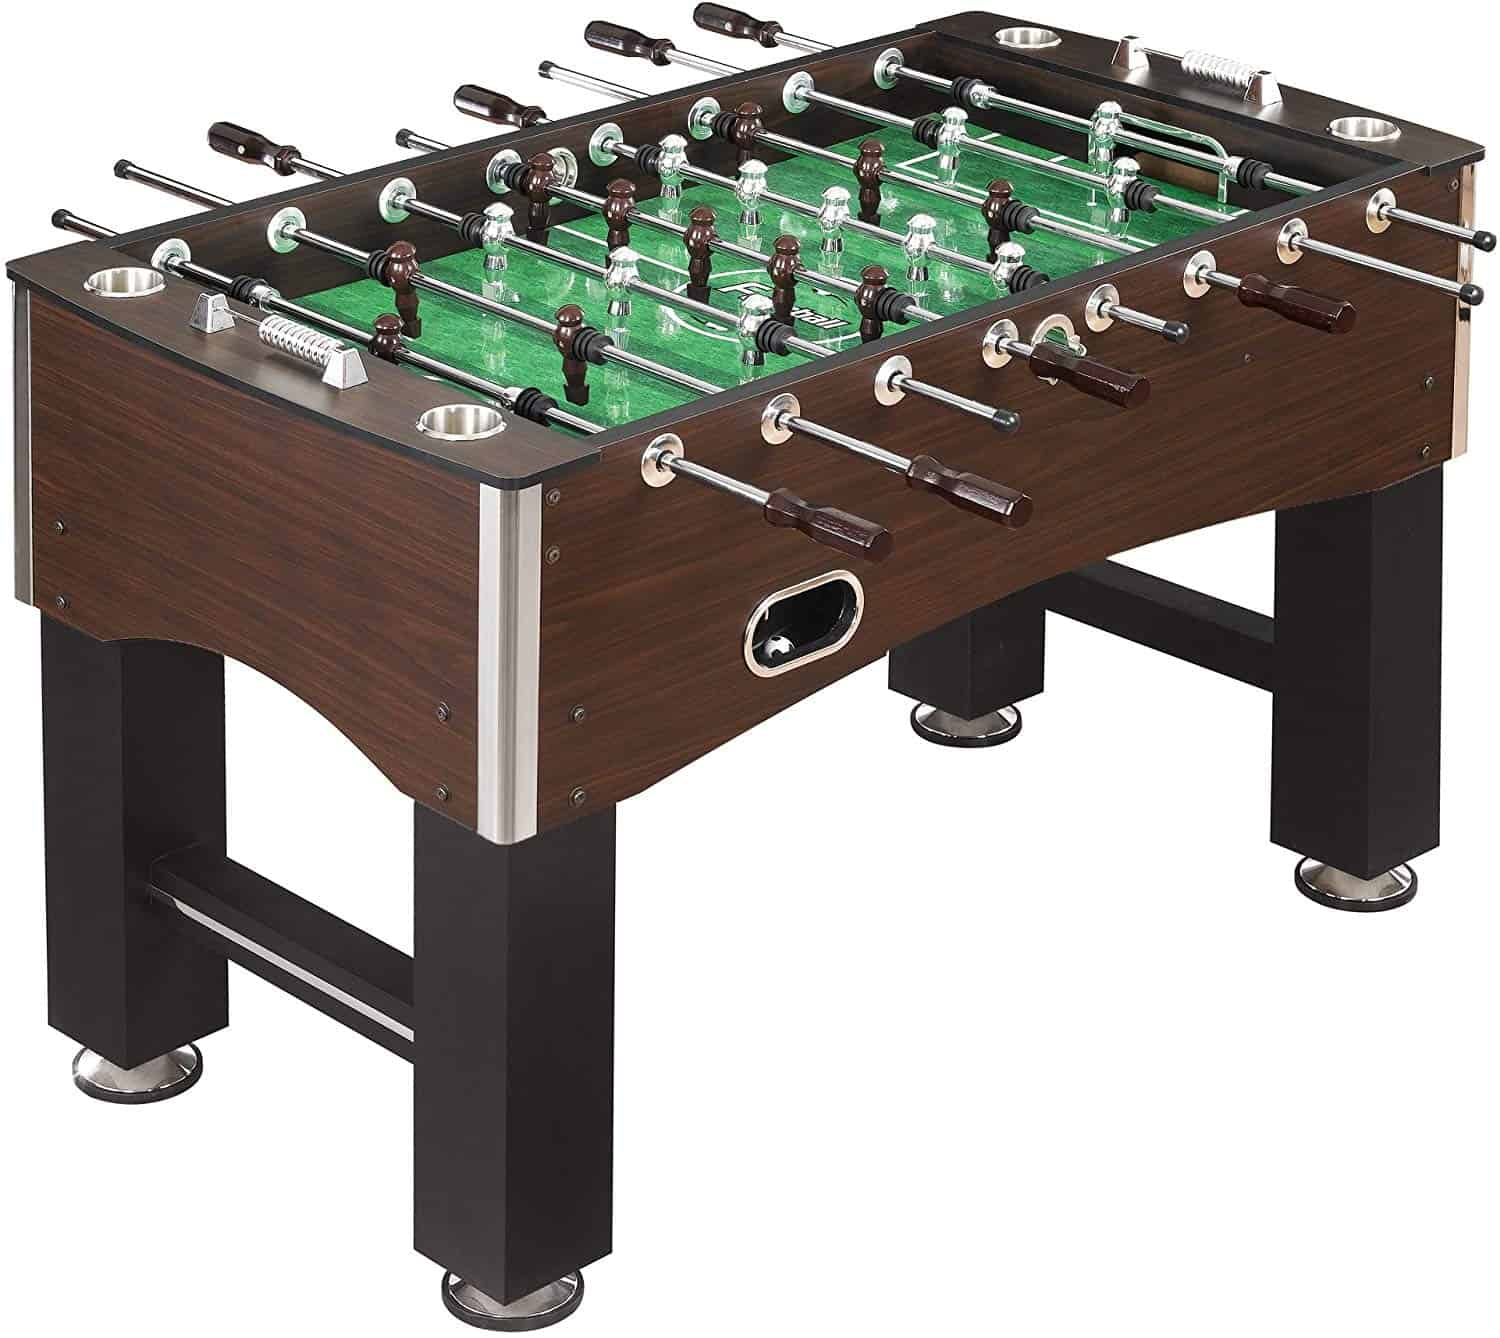 Hathaway 56-Inch Primo Foosball Table Review